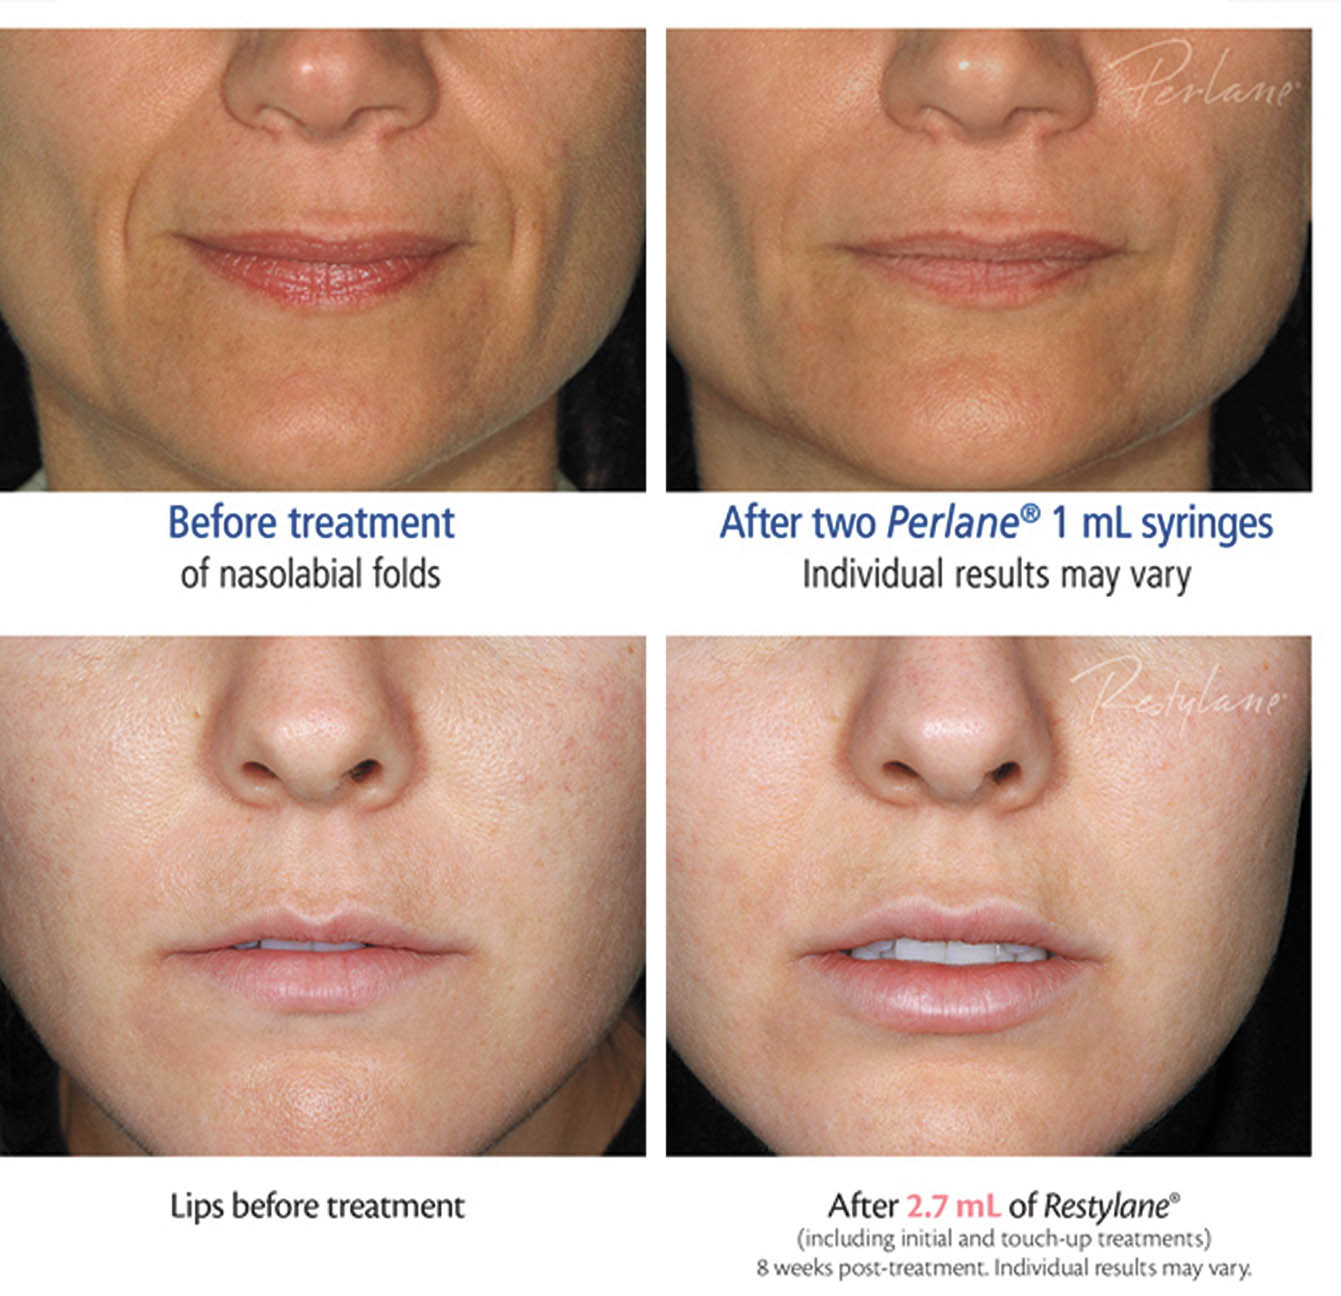 CREATING THE PERFECTION OF PHI WITH FILLERS